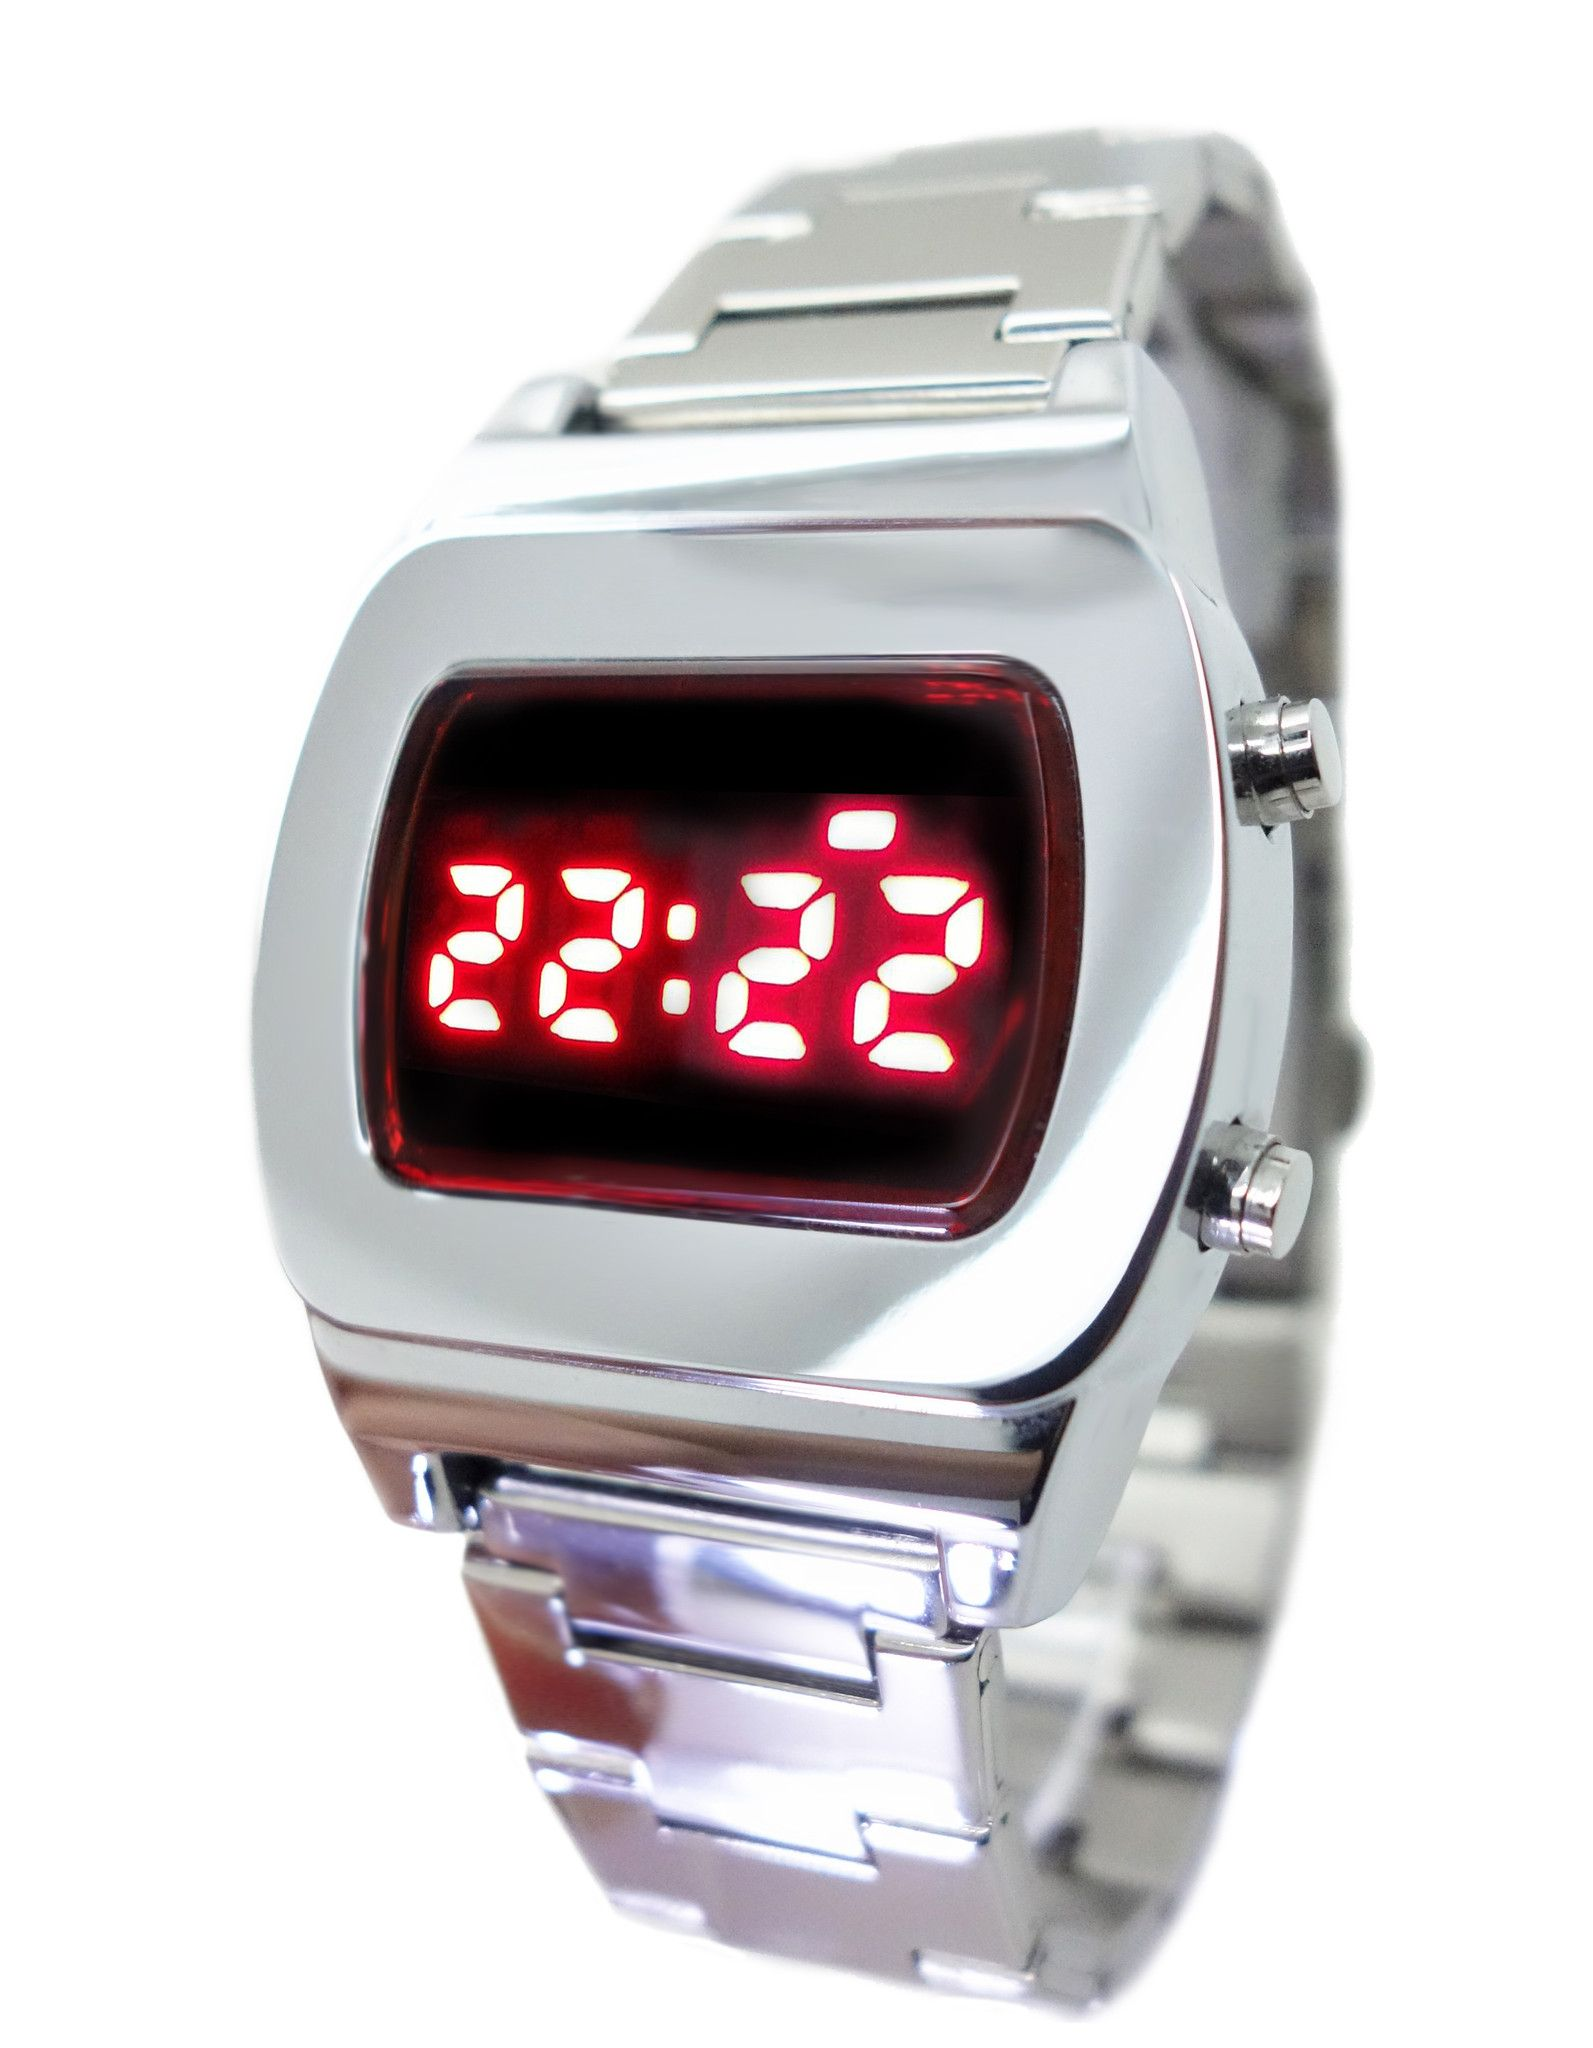 9234da7023d LED Watch Tx8 Multifunction Red Display Digital 70s Retro Chrome Watches-  Limited Edition - Collectors